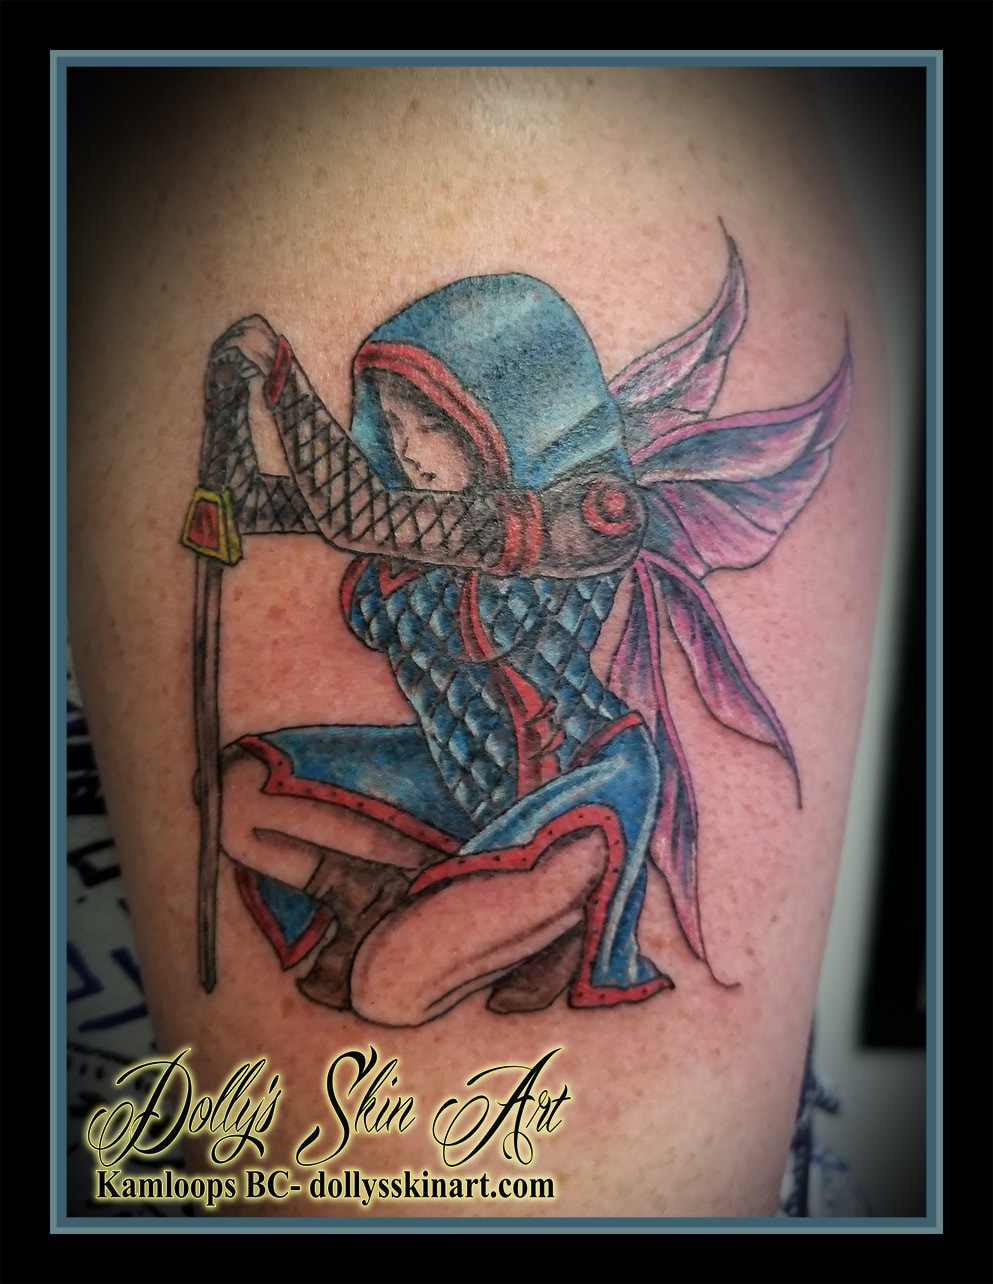 warrior fairy faerie colour kneel blue red purple tattoo kamloops dolly's skin art